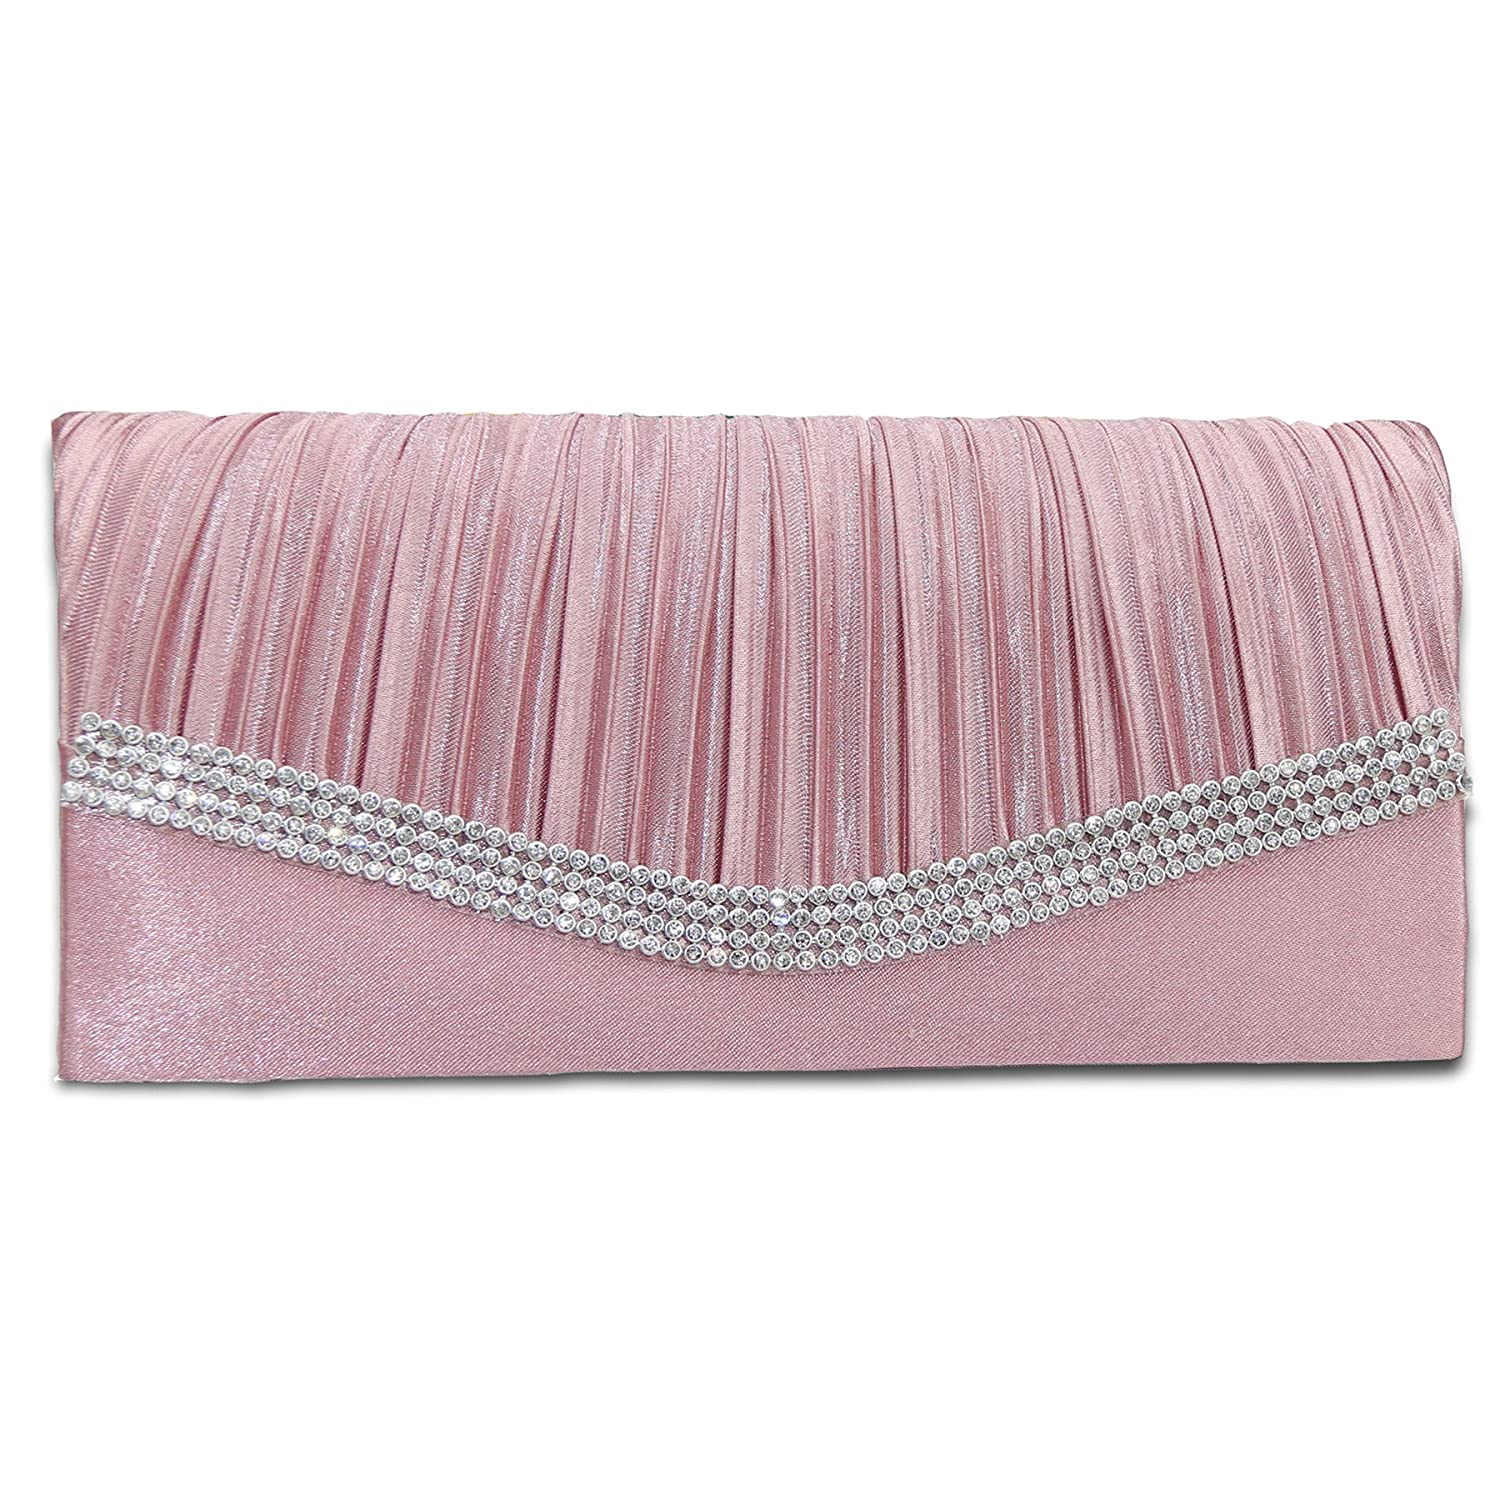 Free Shipping Etial Womens Elegant Crystals Satin Pleated Evening Fashion Clutch Brown Handbags